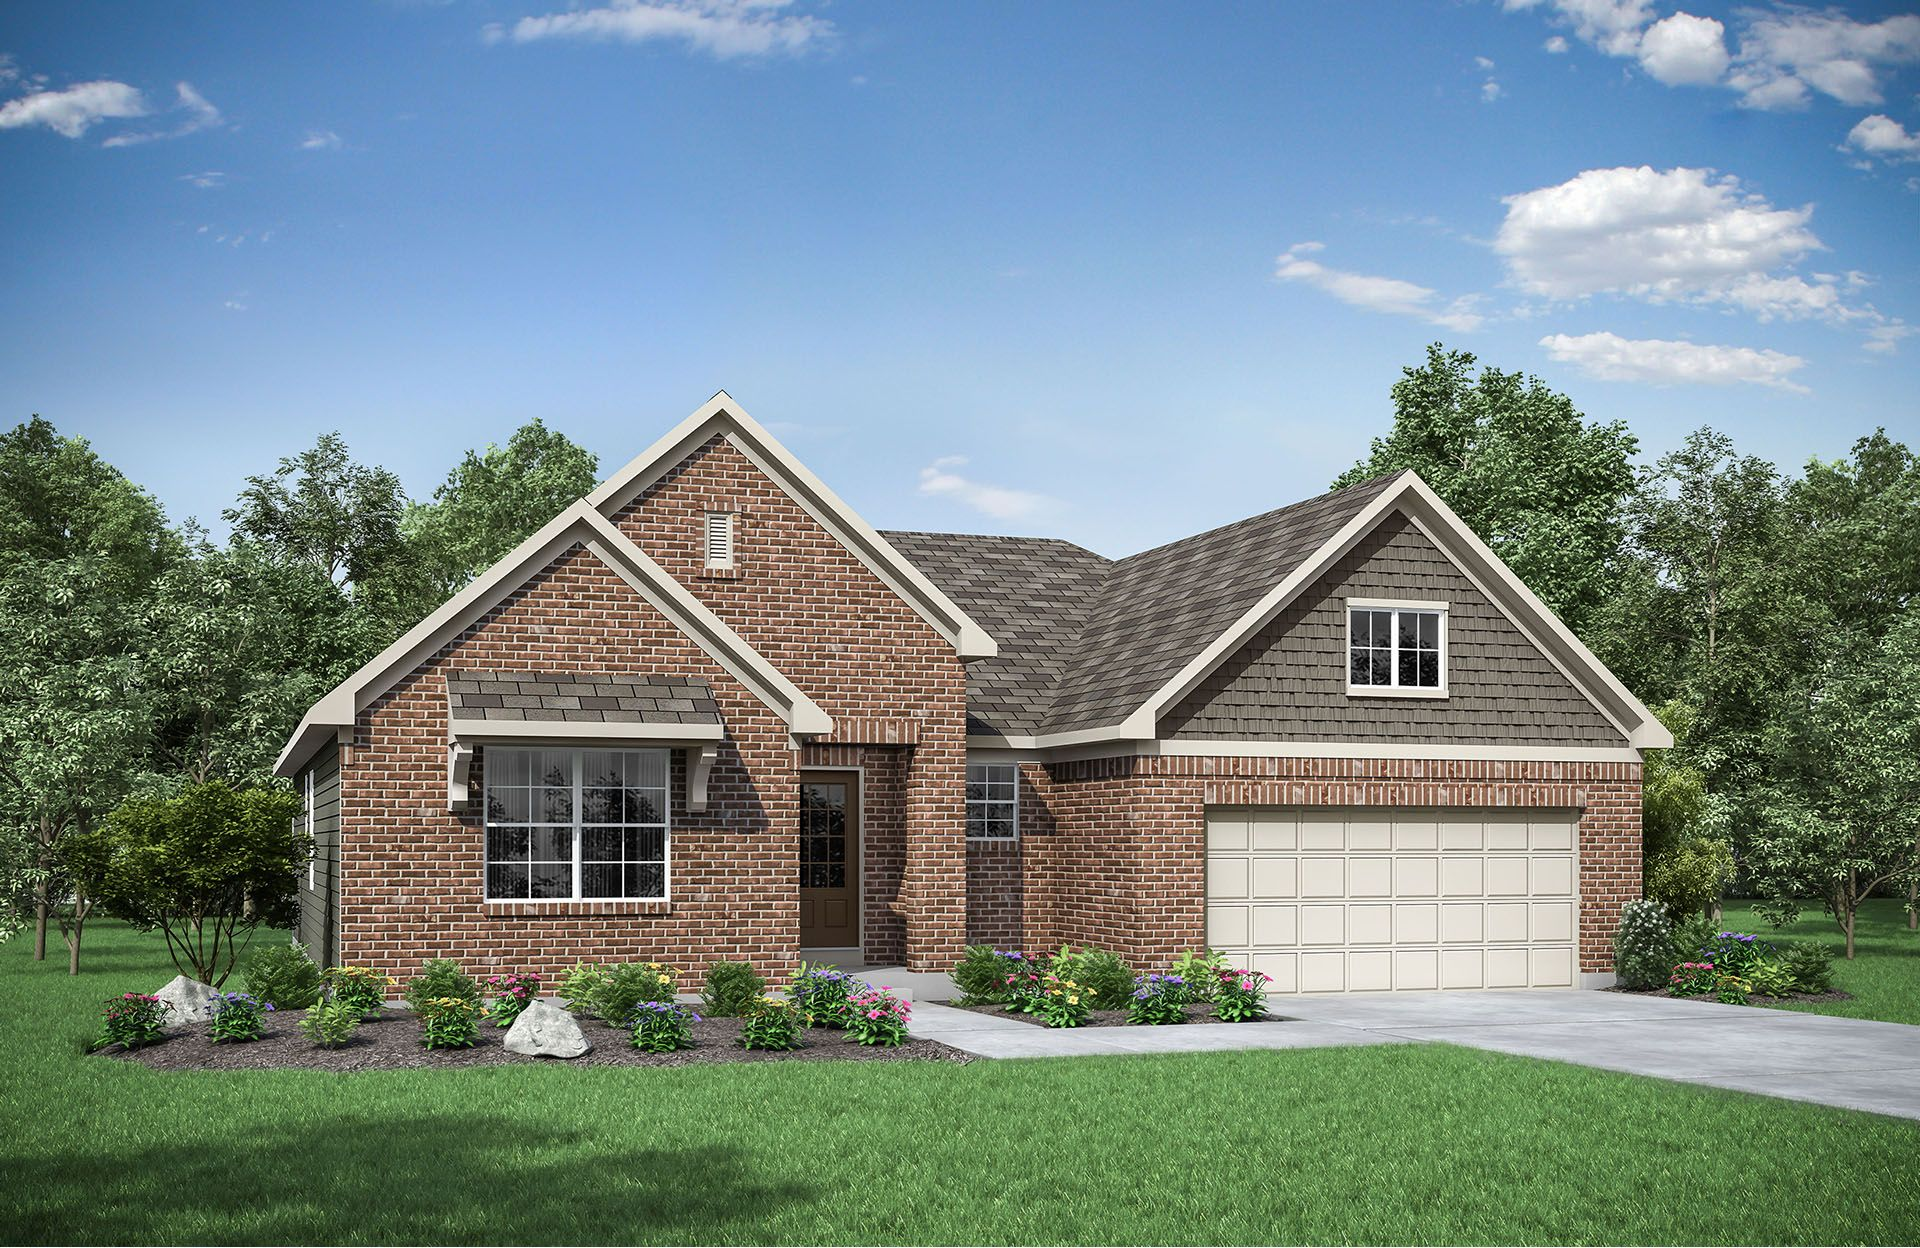 Single Family for Sale at Enclave At South Ridge - Beachwood 3416 Southway Ridge Erlanger, Kentucky 41018 United States